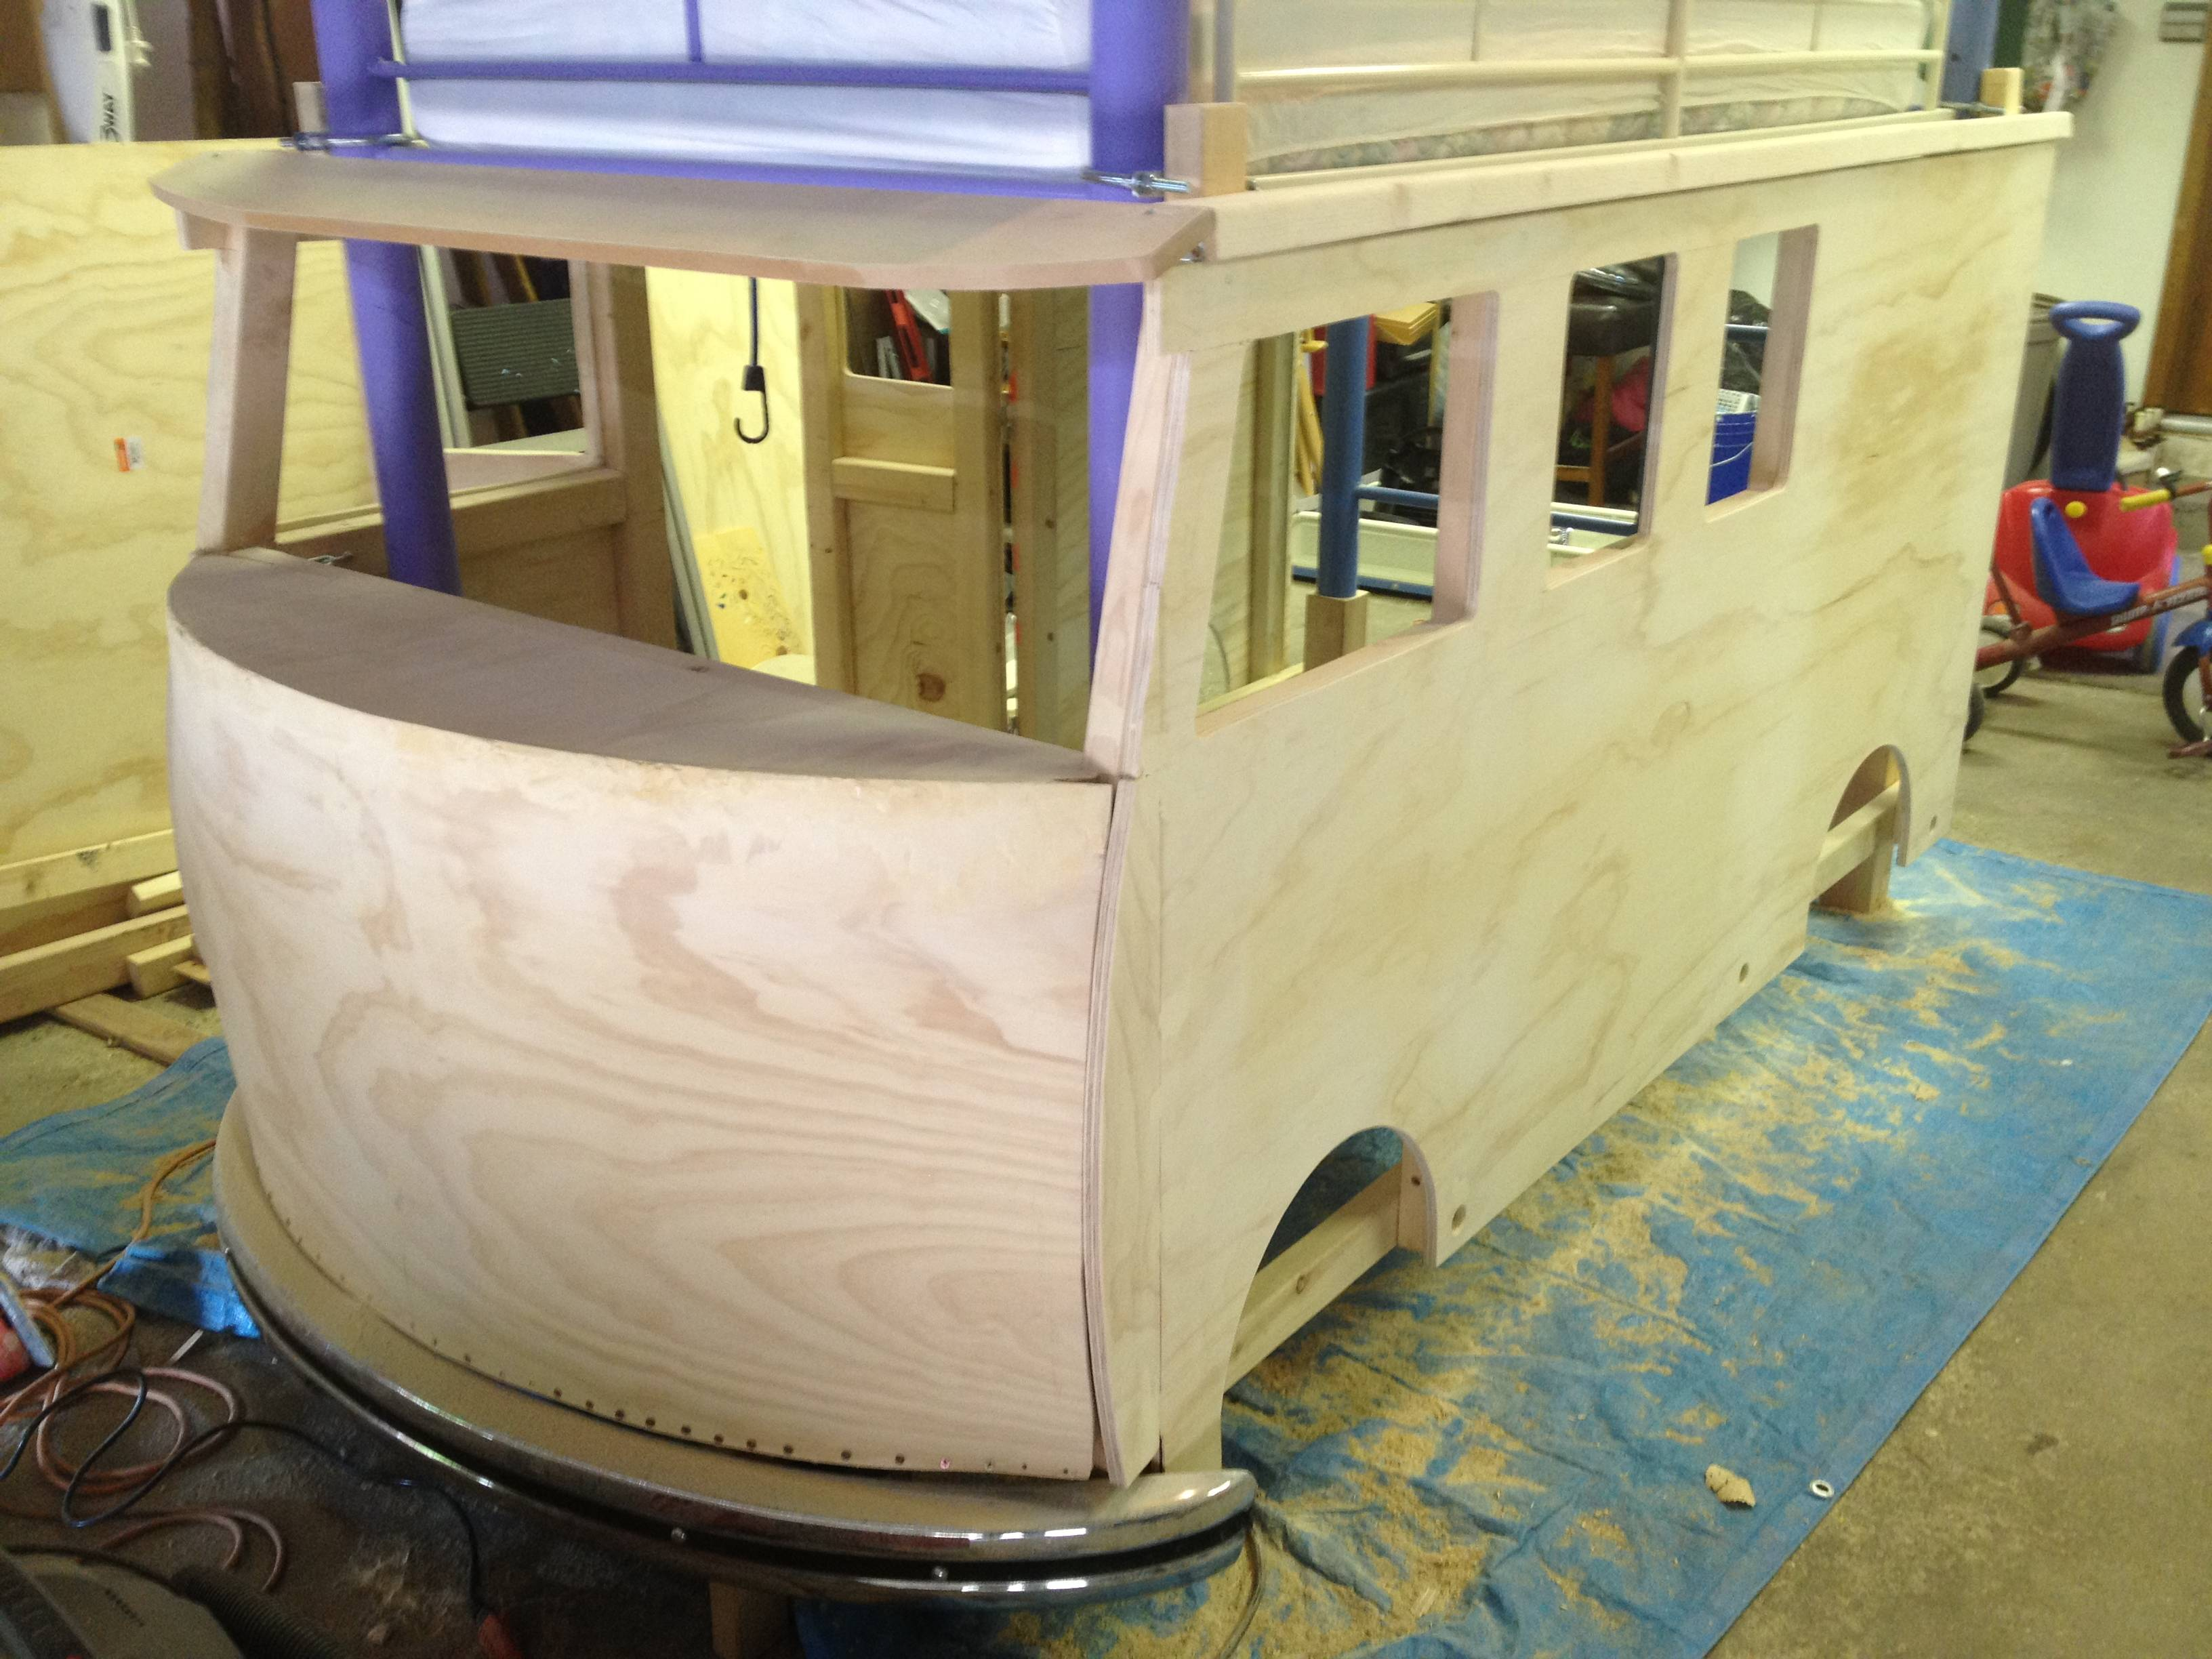 Dad Builds His Daughter An Incredible Volkswagen Bus Bed And It's Awesome